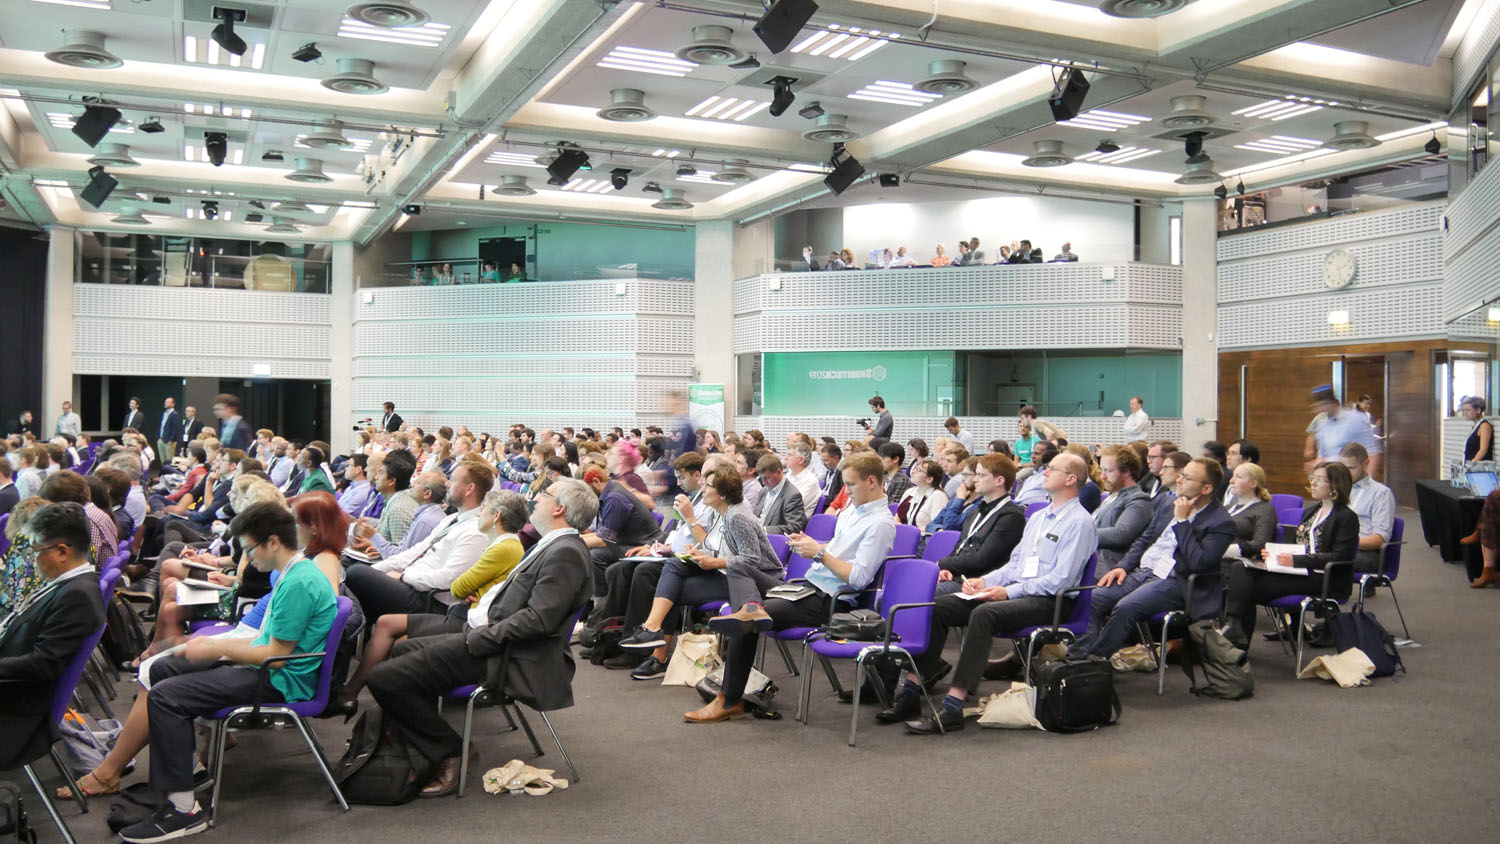 Rapt audiences at SynbiTECH 2019